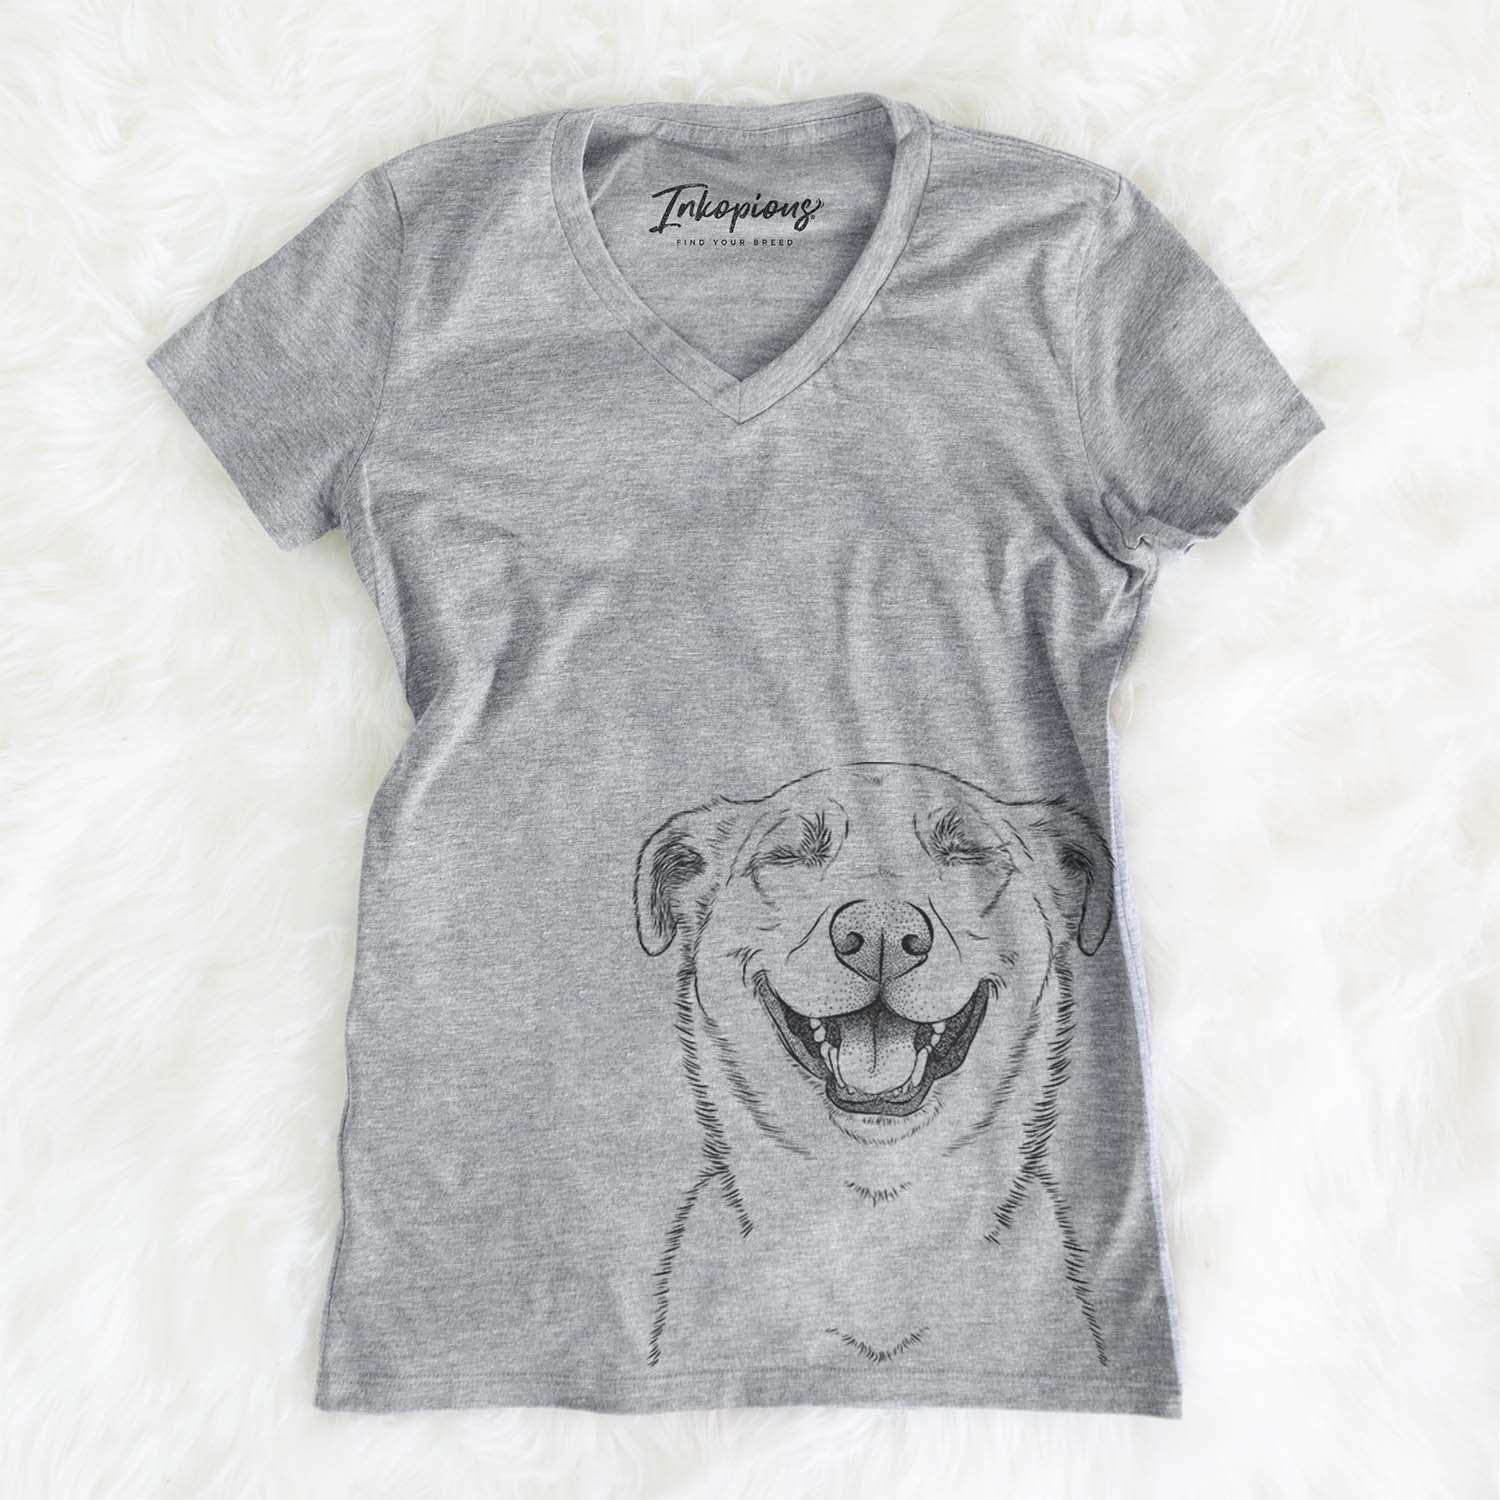 Chancellor the Mixed Breed - Women's Modern Fit V-neck Shirt